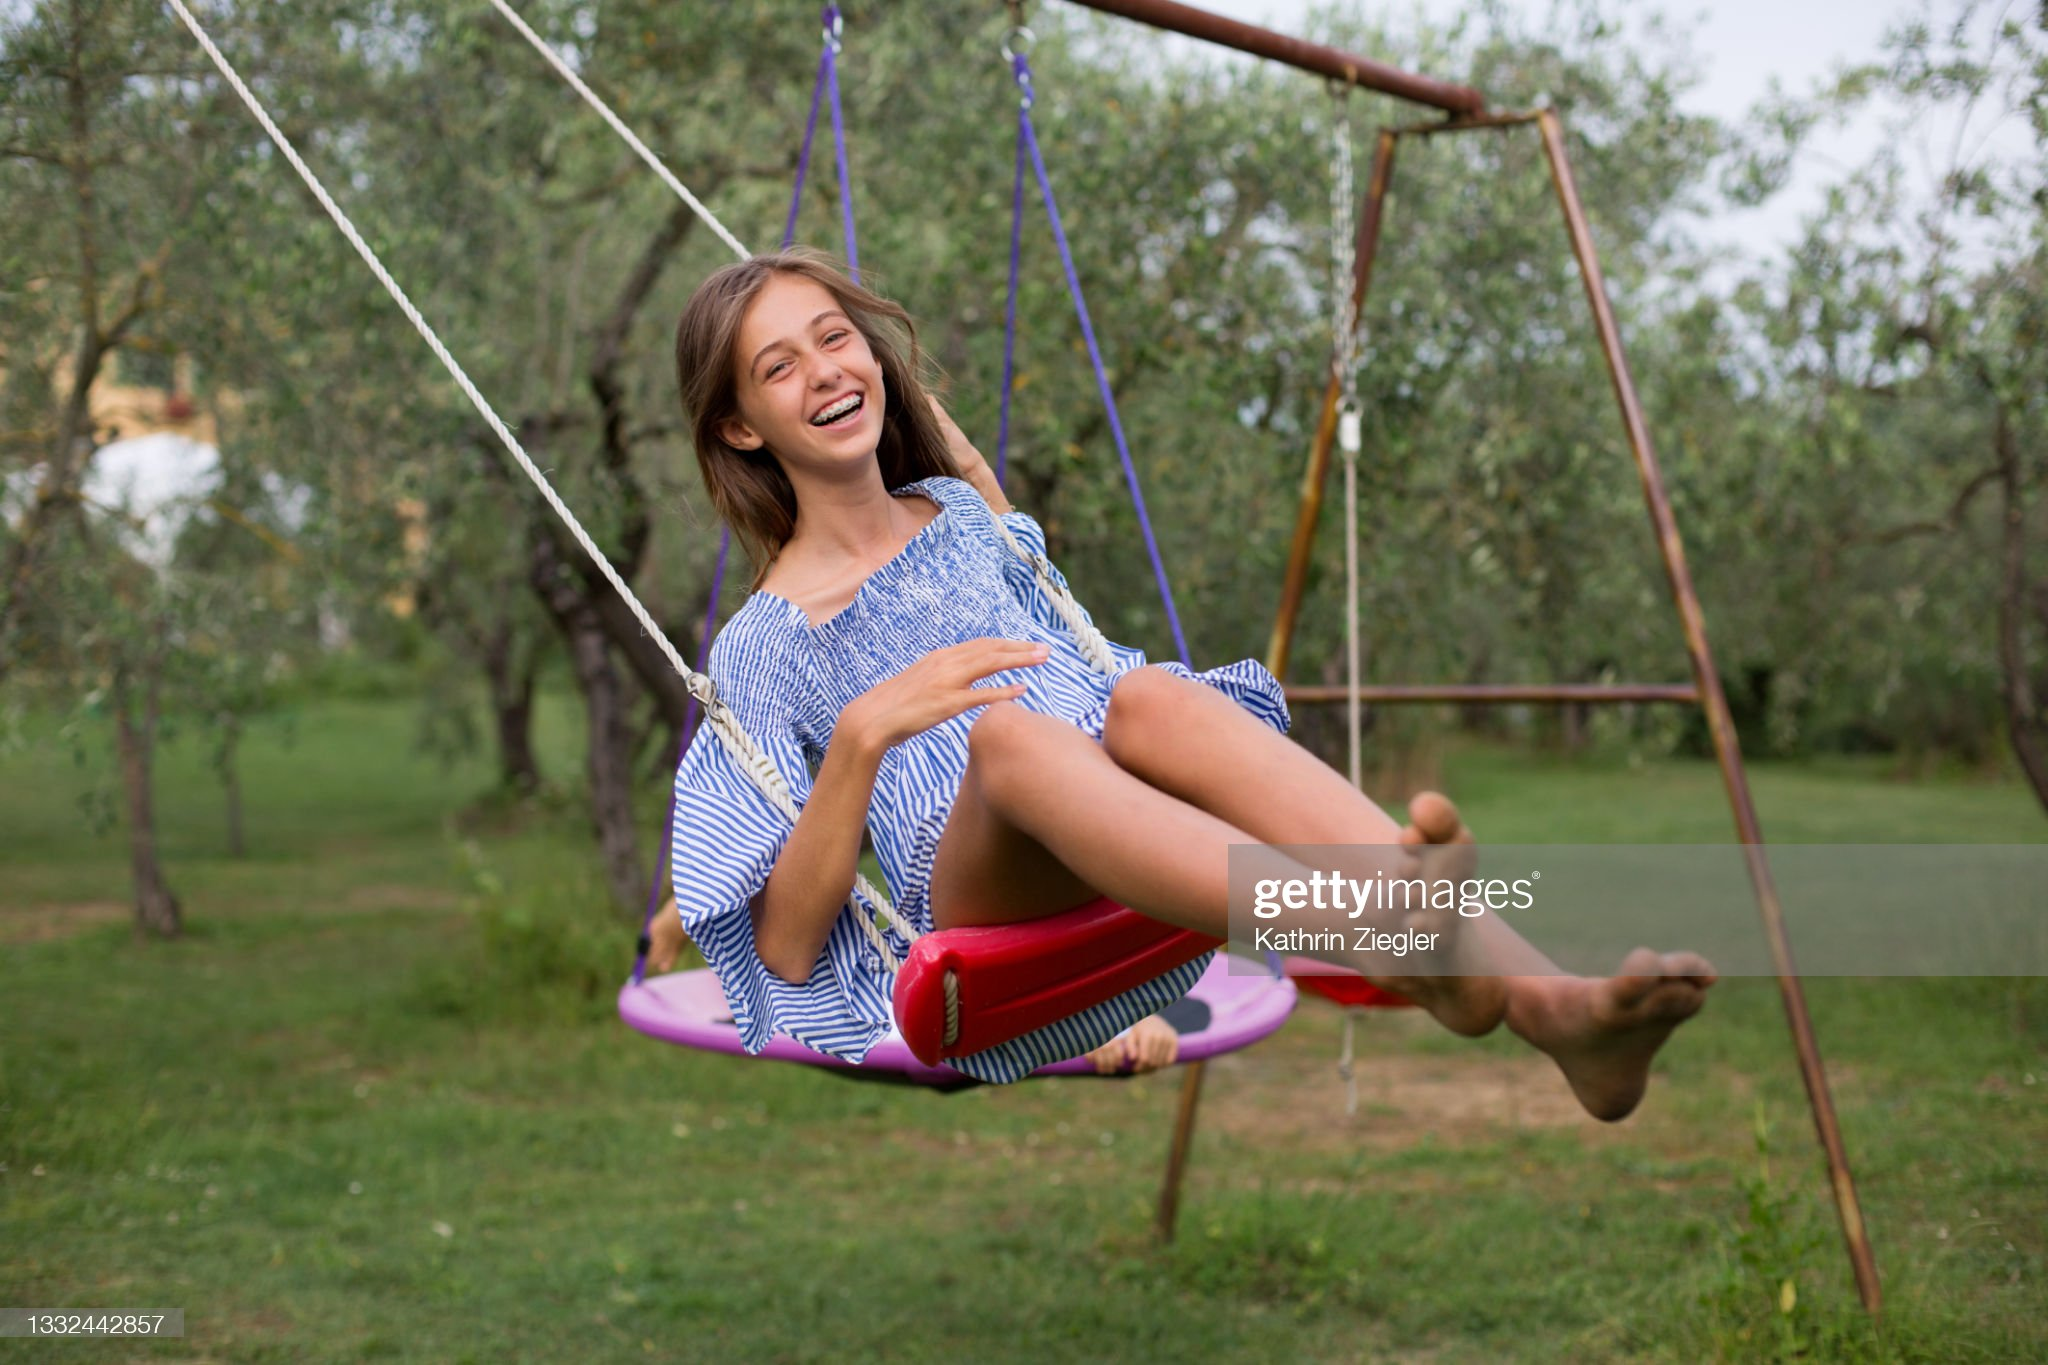 https://media.gettyimages.com/photos/young-girl-on-a-swing-laughing-picture-id1332442857?s=2048x2048